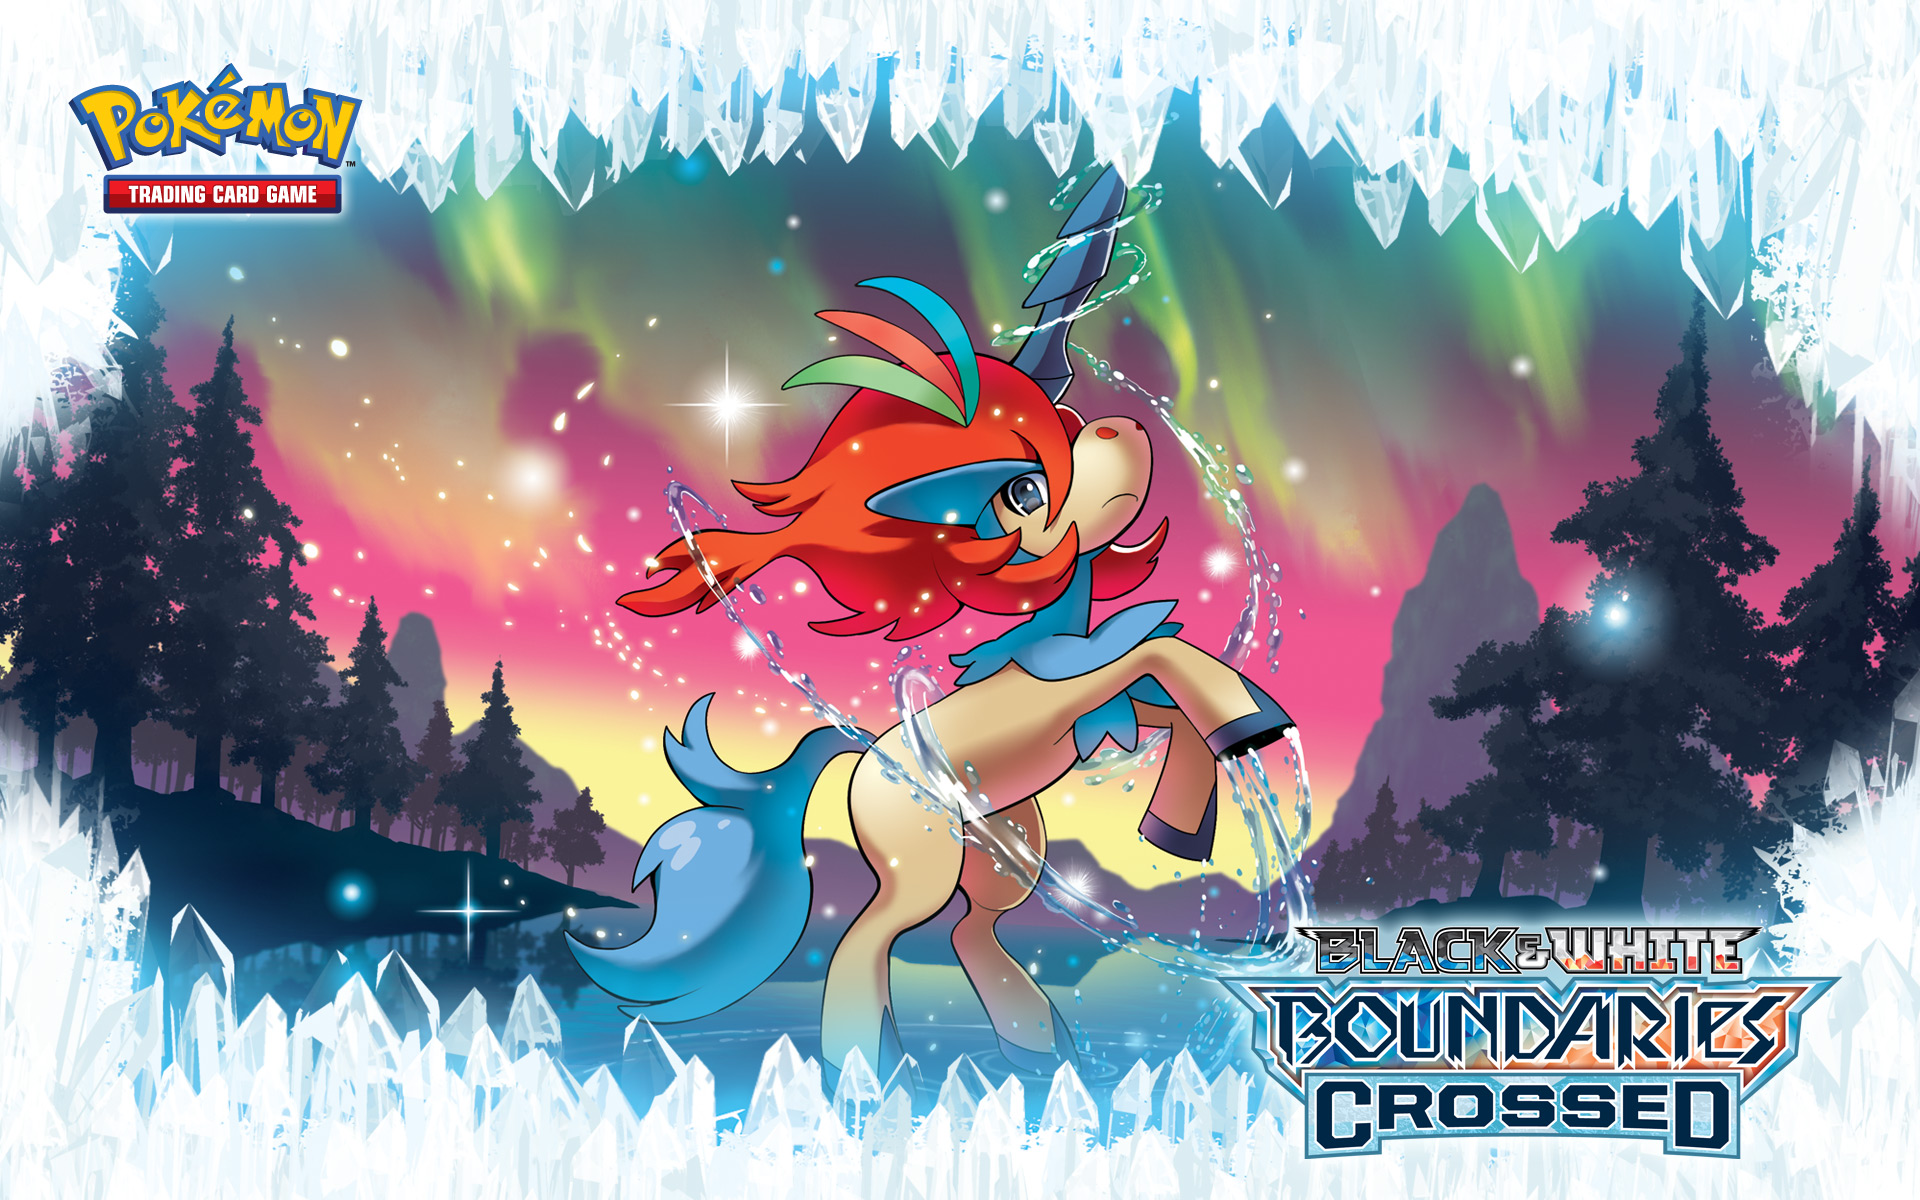 Pokemon Xy Keldeo 41 Background Wallpaper